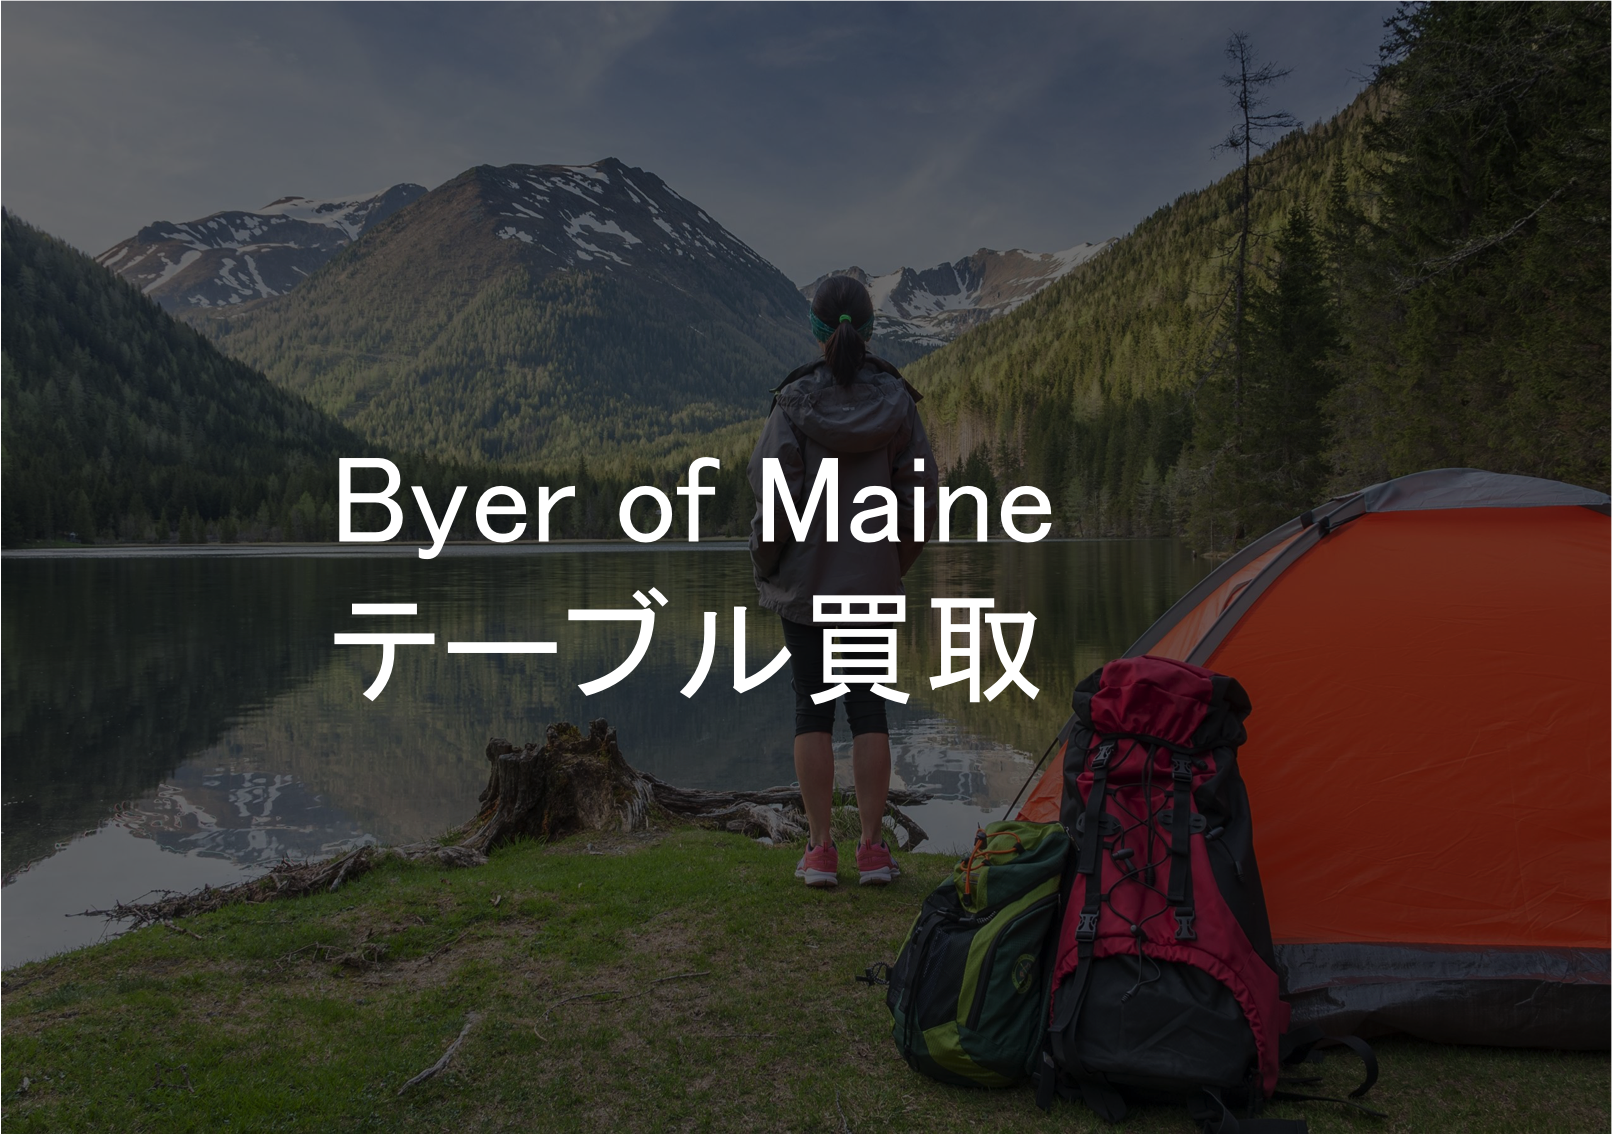 Byer of Maineテーブル買取なら